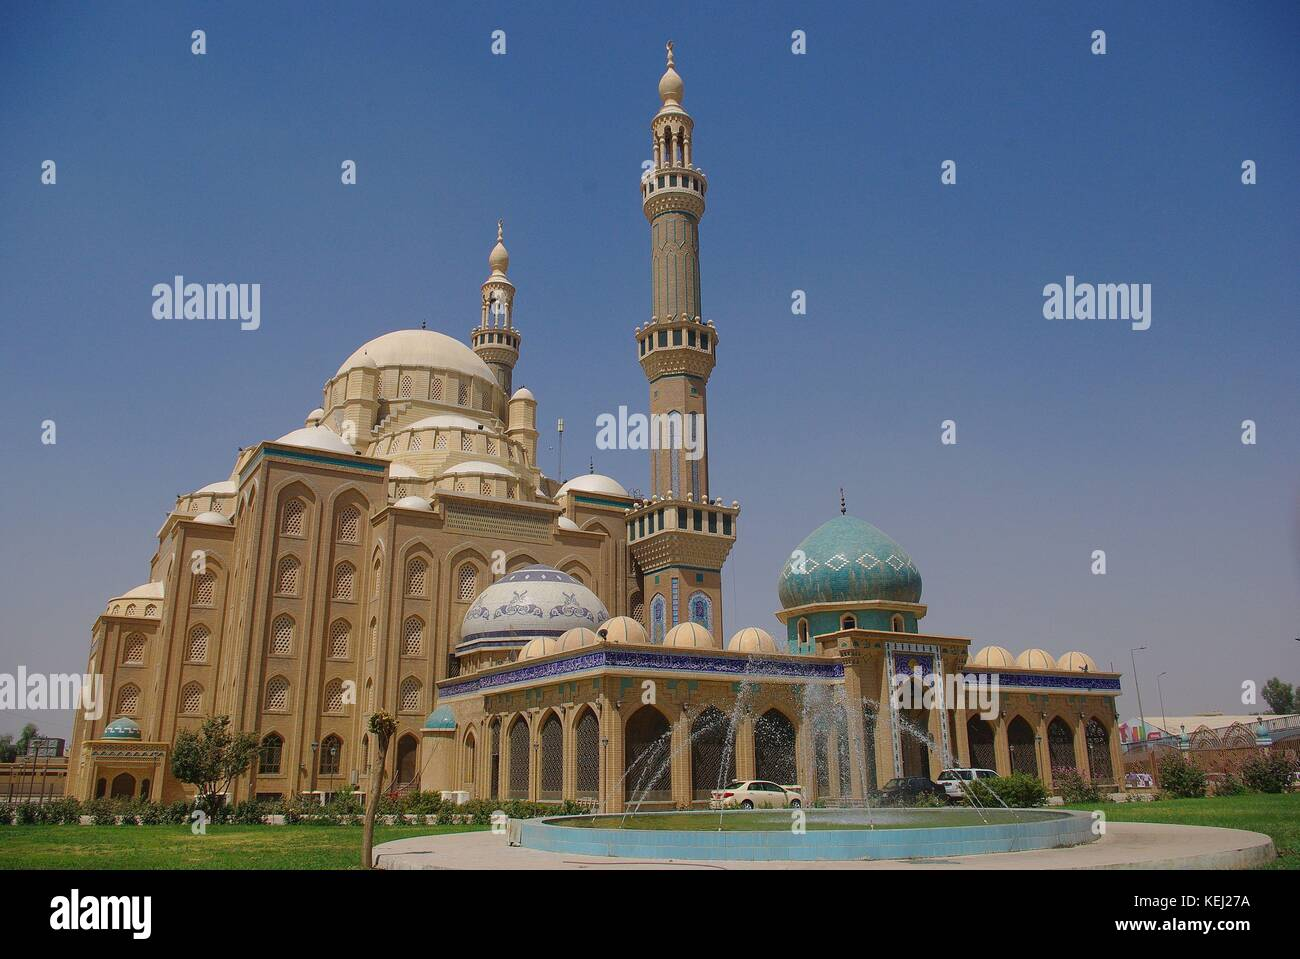 Erbil, the capital of Iraqi Kurdistan: the new built mosque - Stock Image